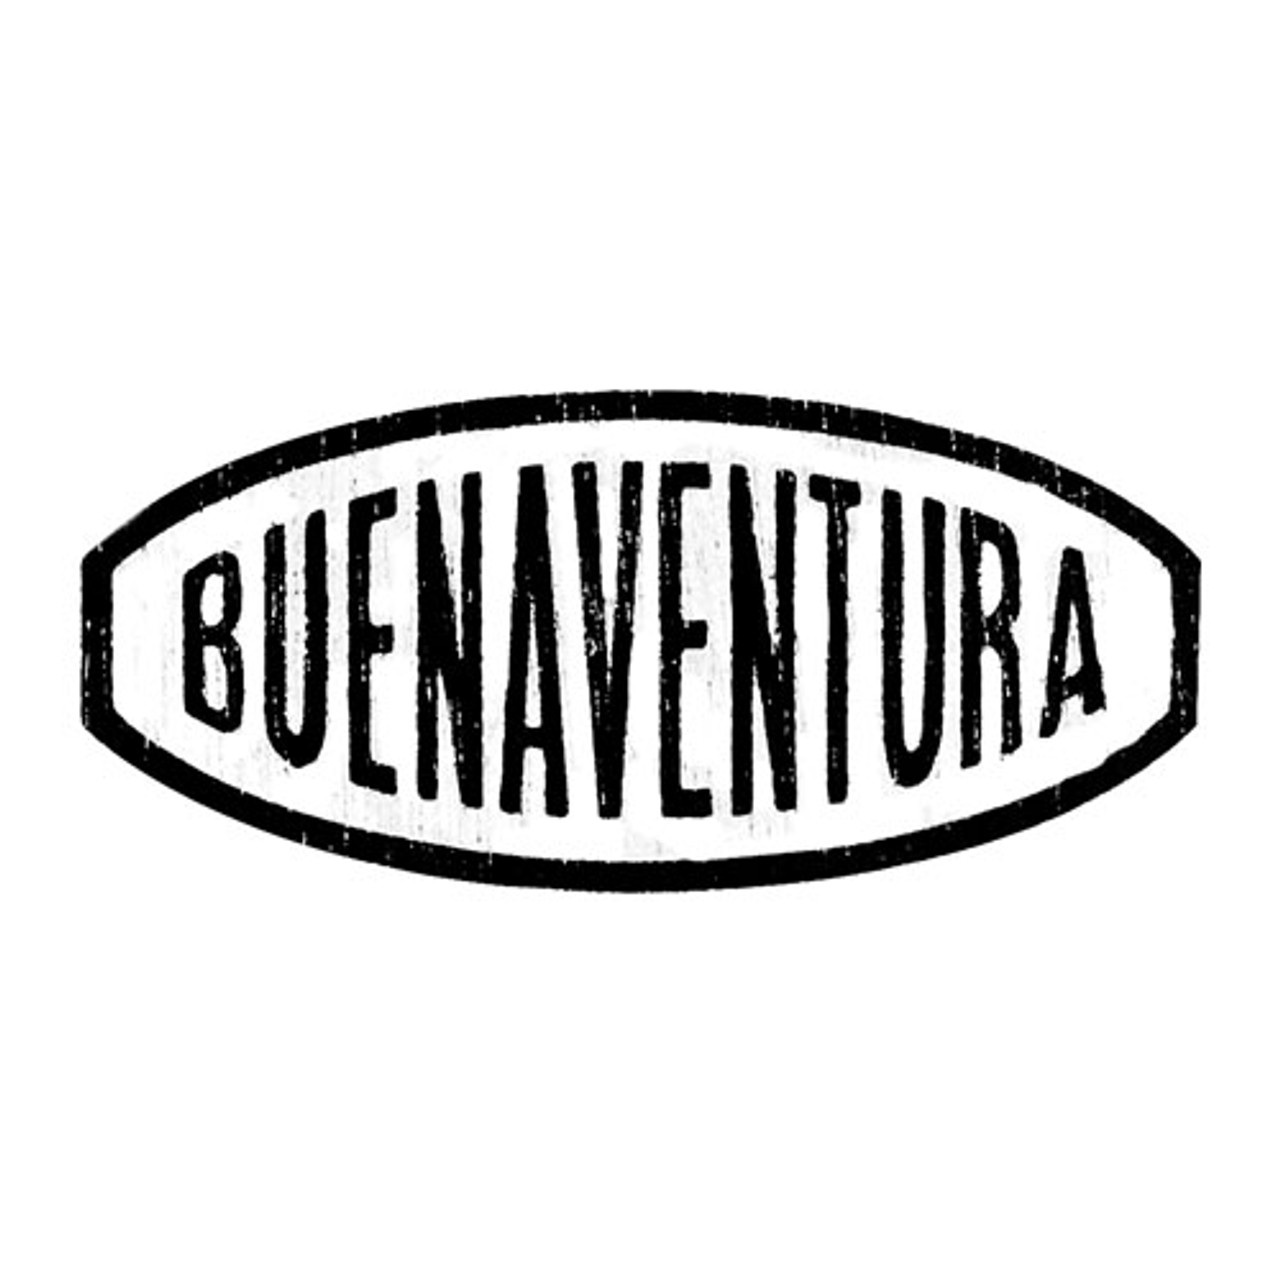 Curivari Buenaventura BV554 Cigars - 5 x 54 (Box of 10)